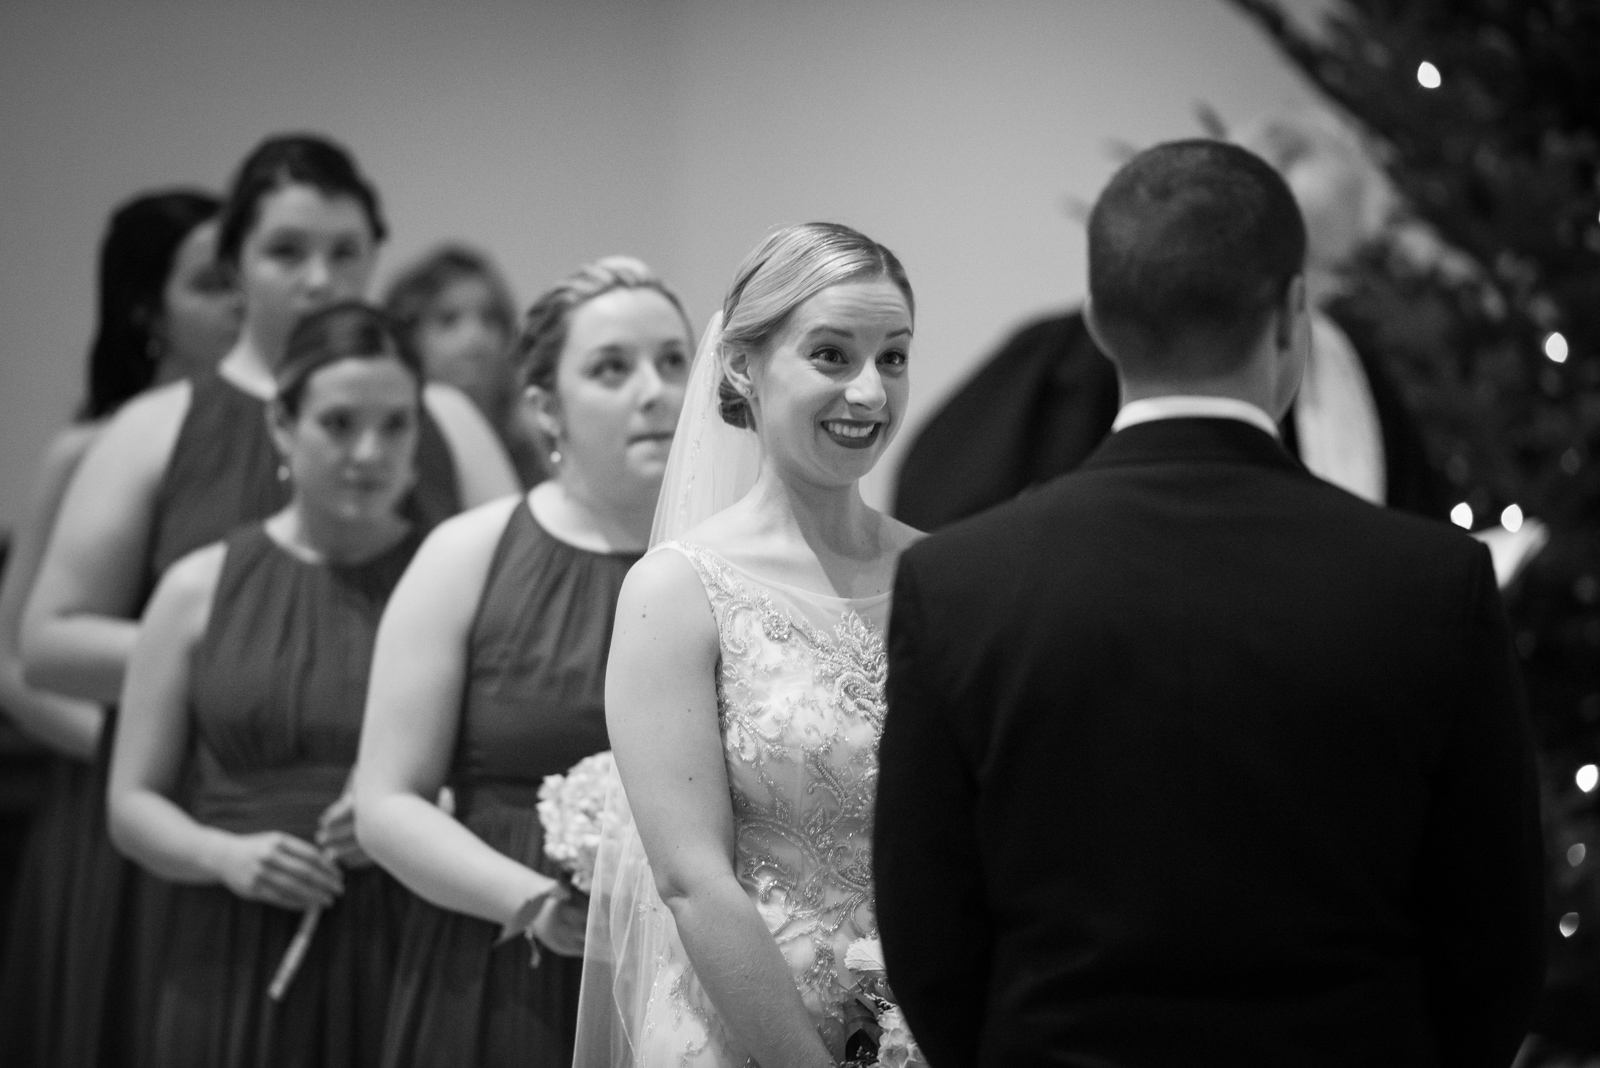 Scranton-clarks-summit-wedding-glen-oaks-contry-club-wedding-photographer-steven-serge-41.jpg